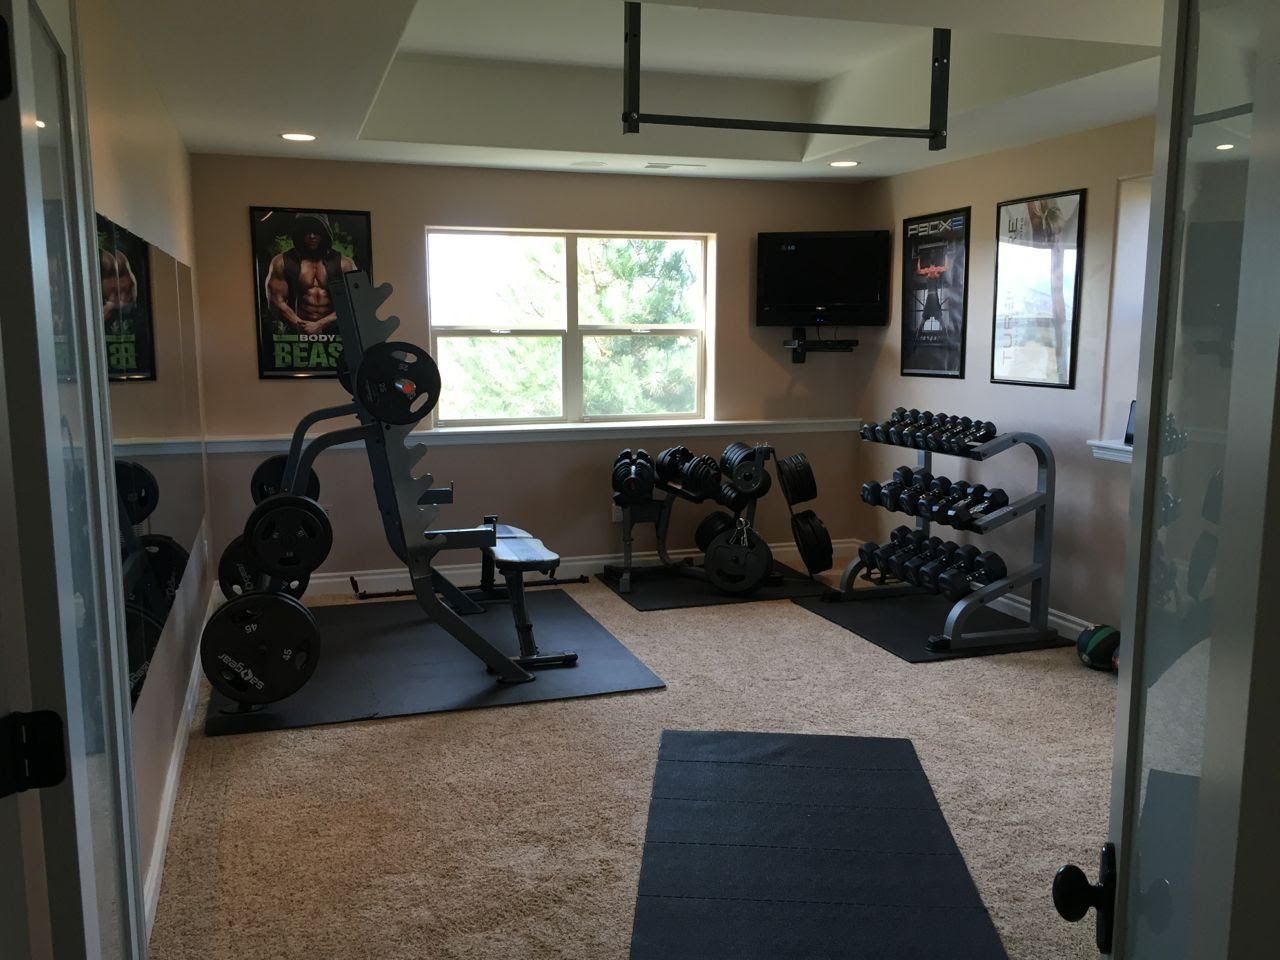 How To Setup Awesome Home Gym In Bedroom Gym Room At Home Workout Room Home Small Home Gyms